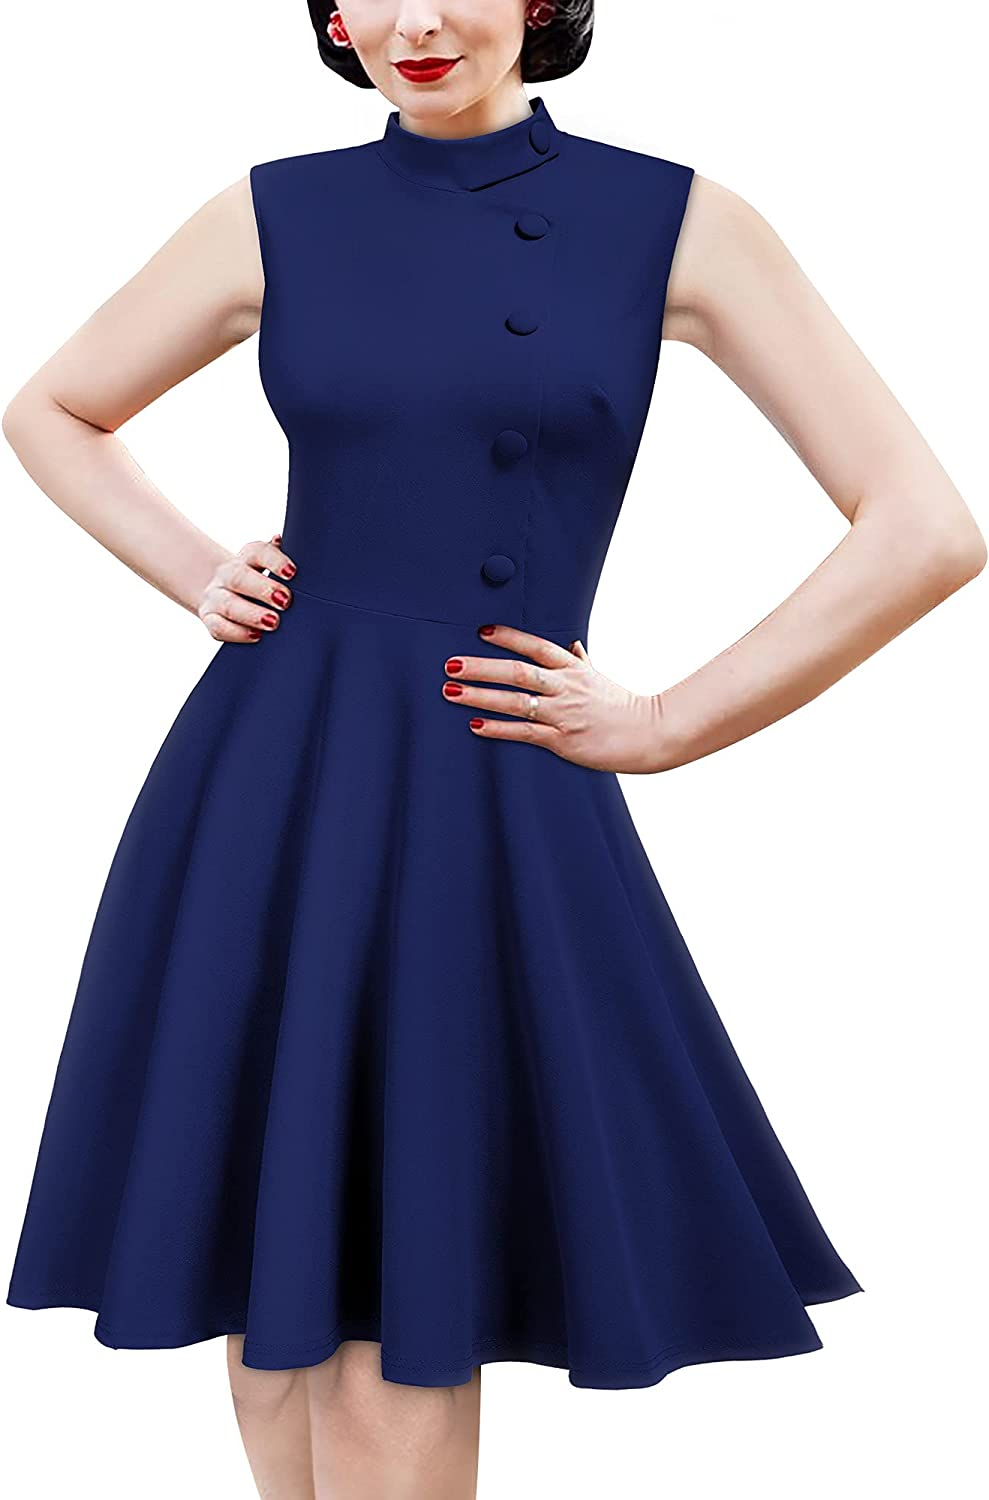 MISSMAY Women's Vintage Style High Collar Cocktail Party Dress